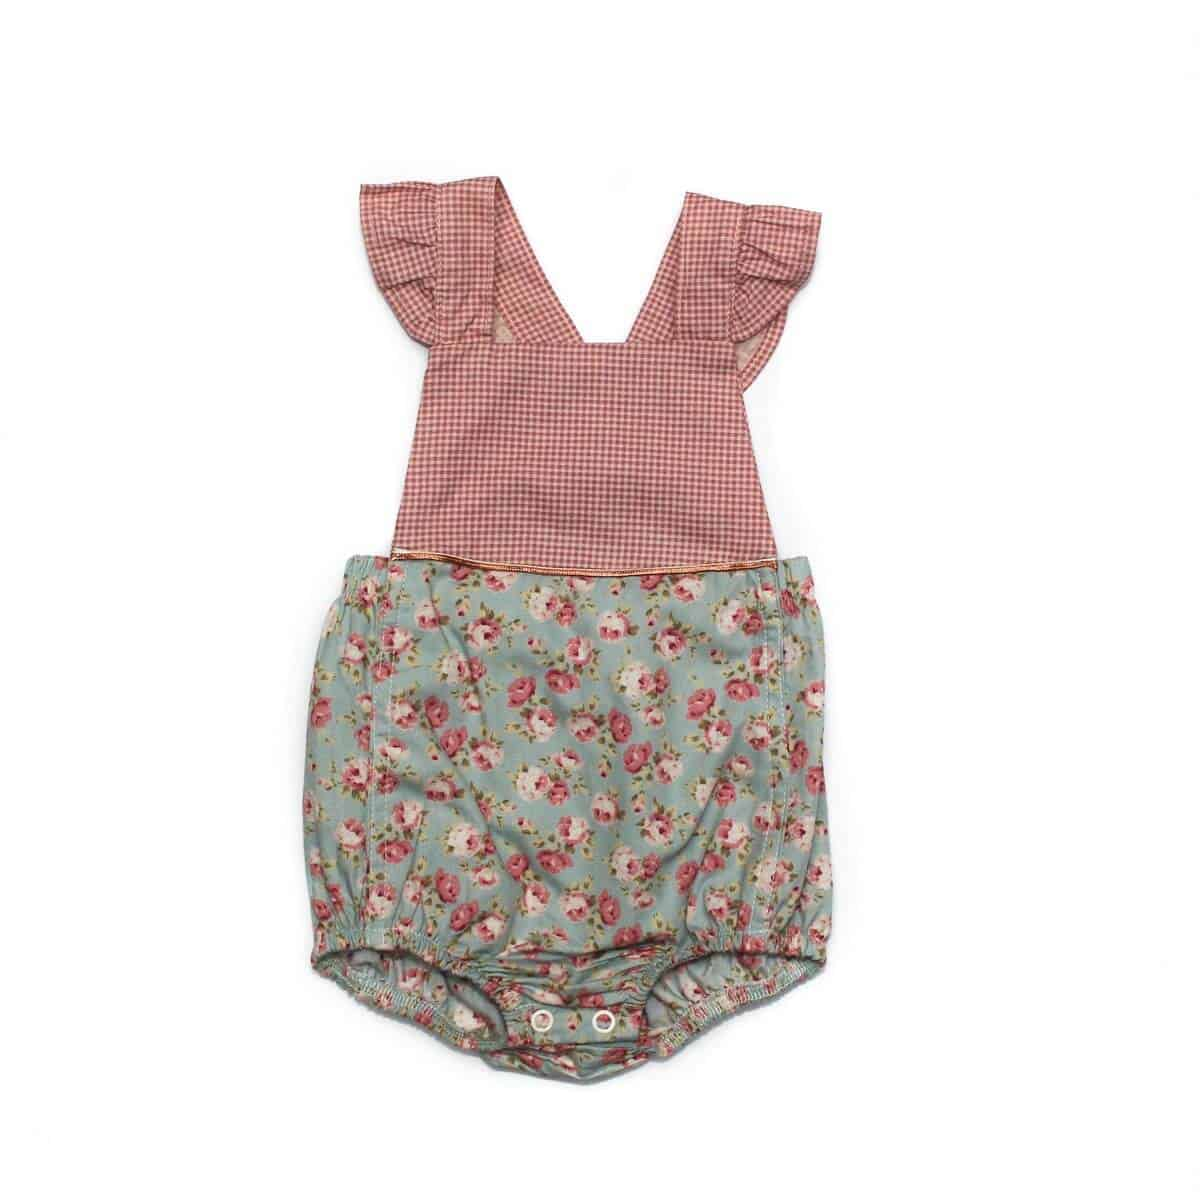 4e061a841 Stylish Onesie- Pink check/floral – Just Chillin Funky Kidswear